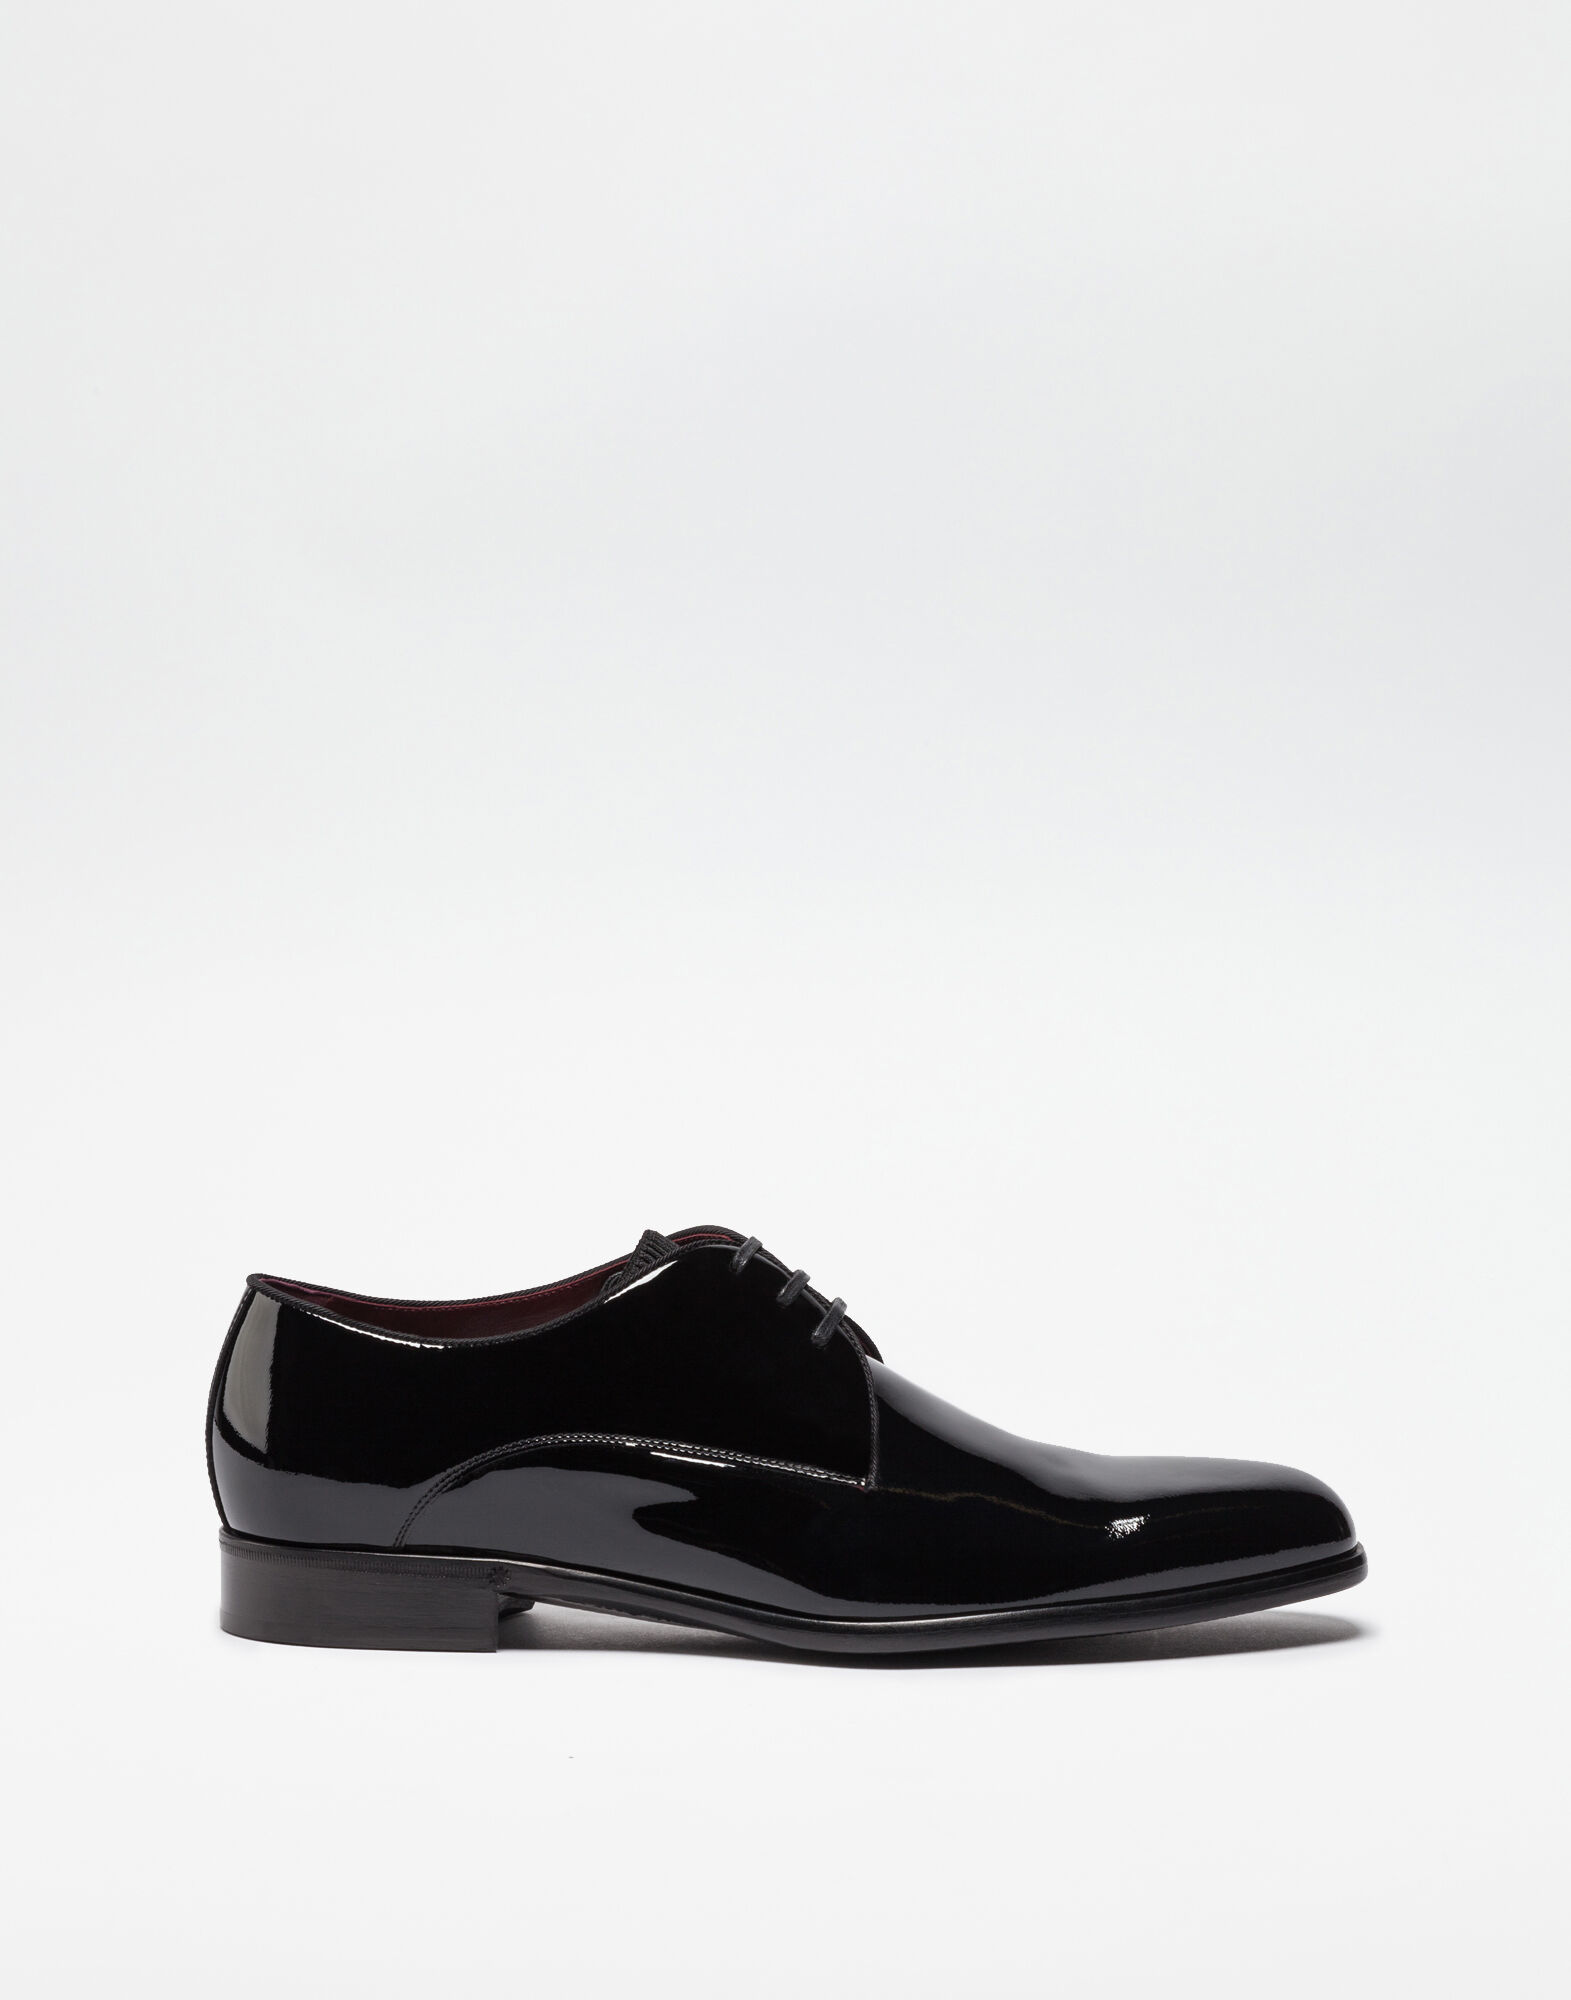 patent leather Derby shoes - Black Dolce & Gabbana Ksqh4pYolR